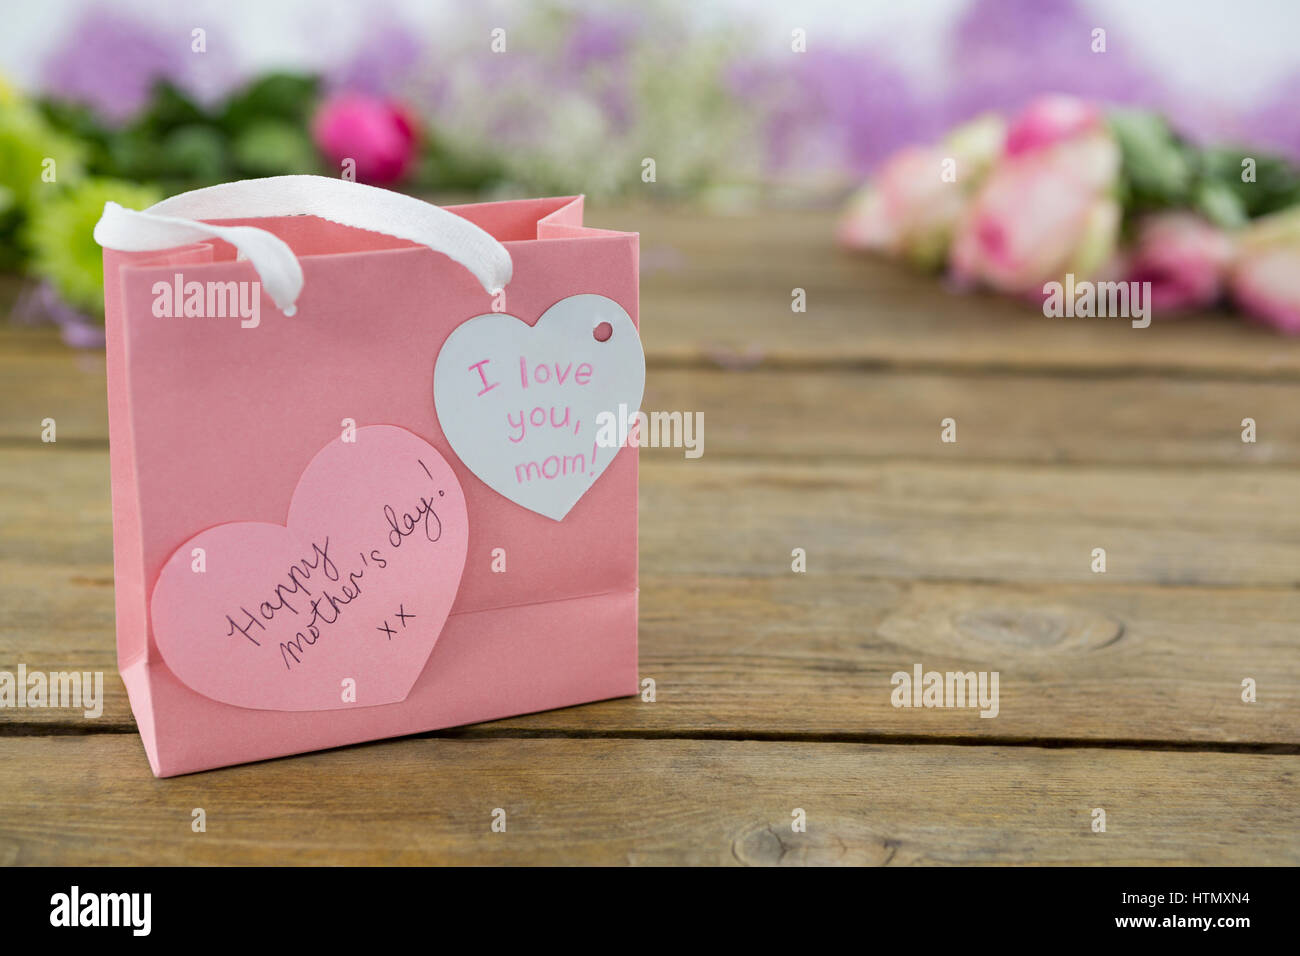 Pink gift bag with heart shape tag on wooden surface Stock Photo ...